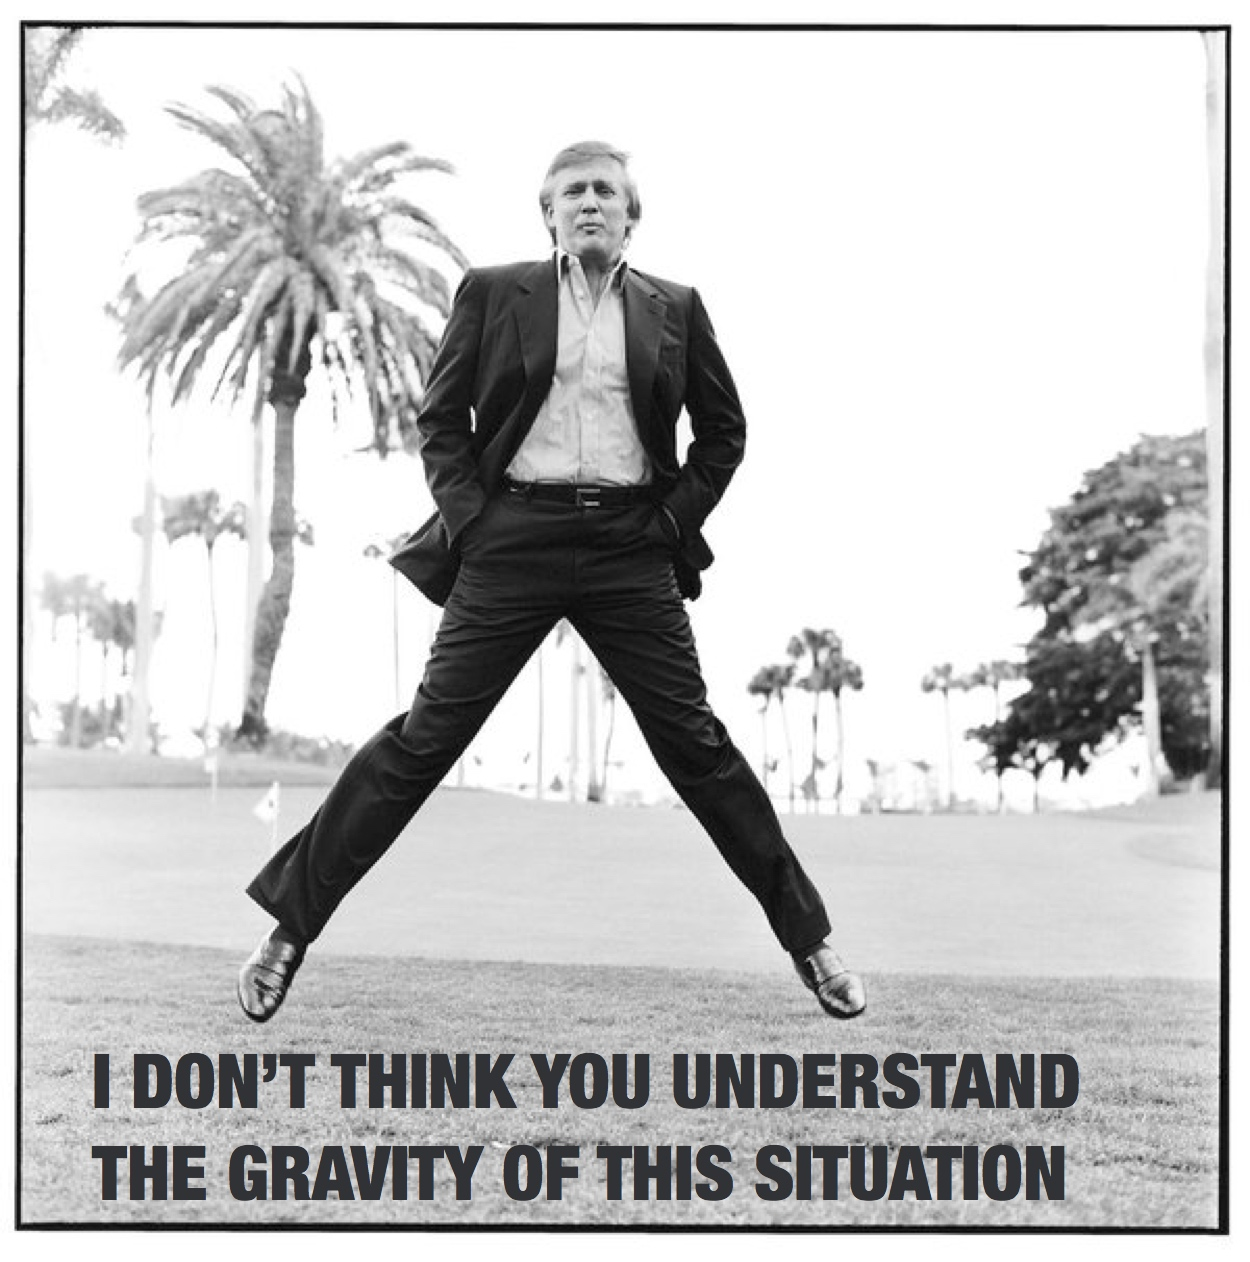 I don't think you understand the gravity of this situation - Donald Trump